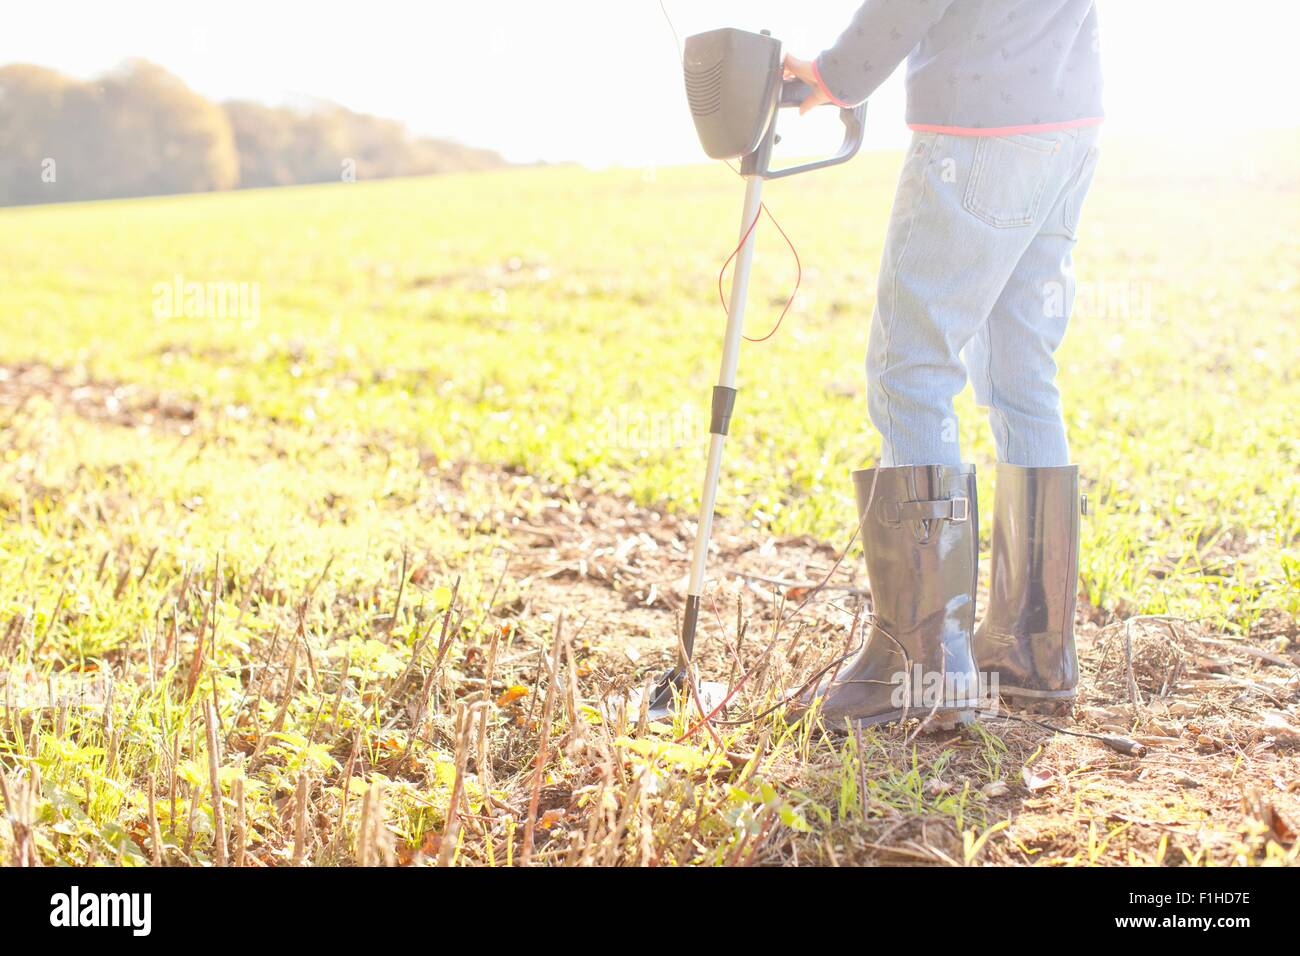 Waist down view of girl using metal detector in field - Stock Image